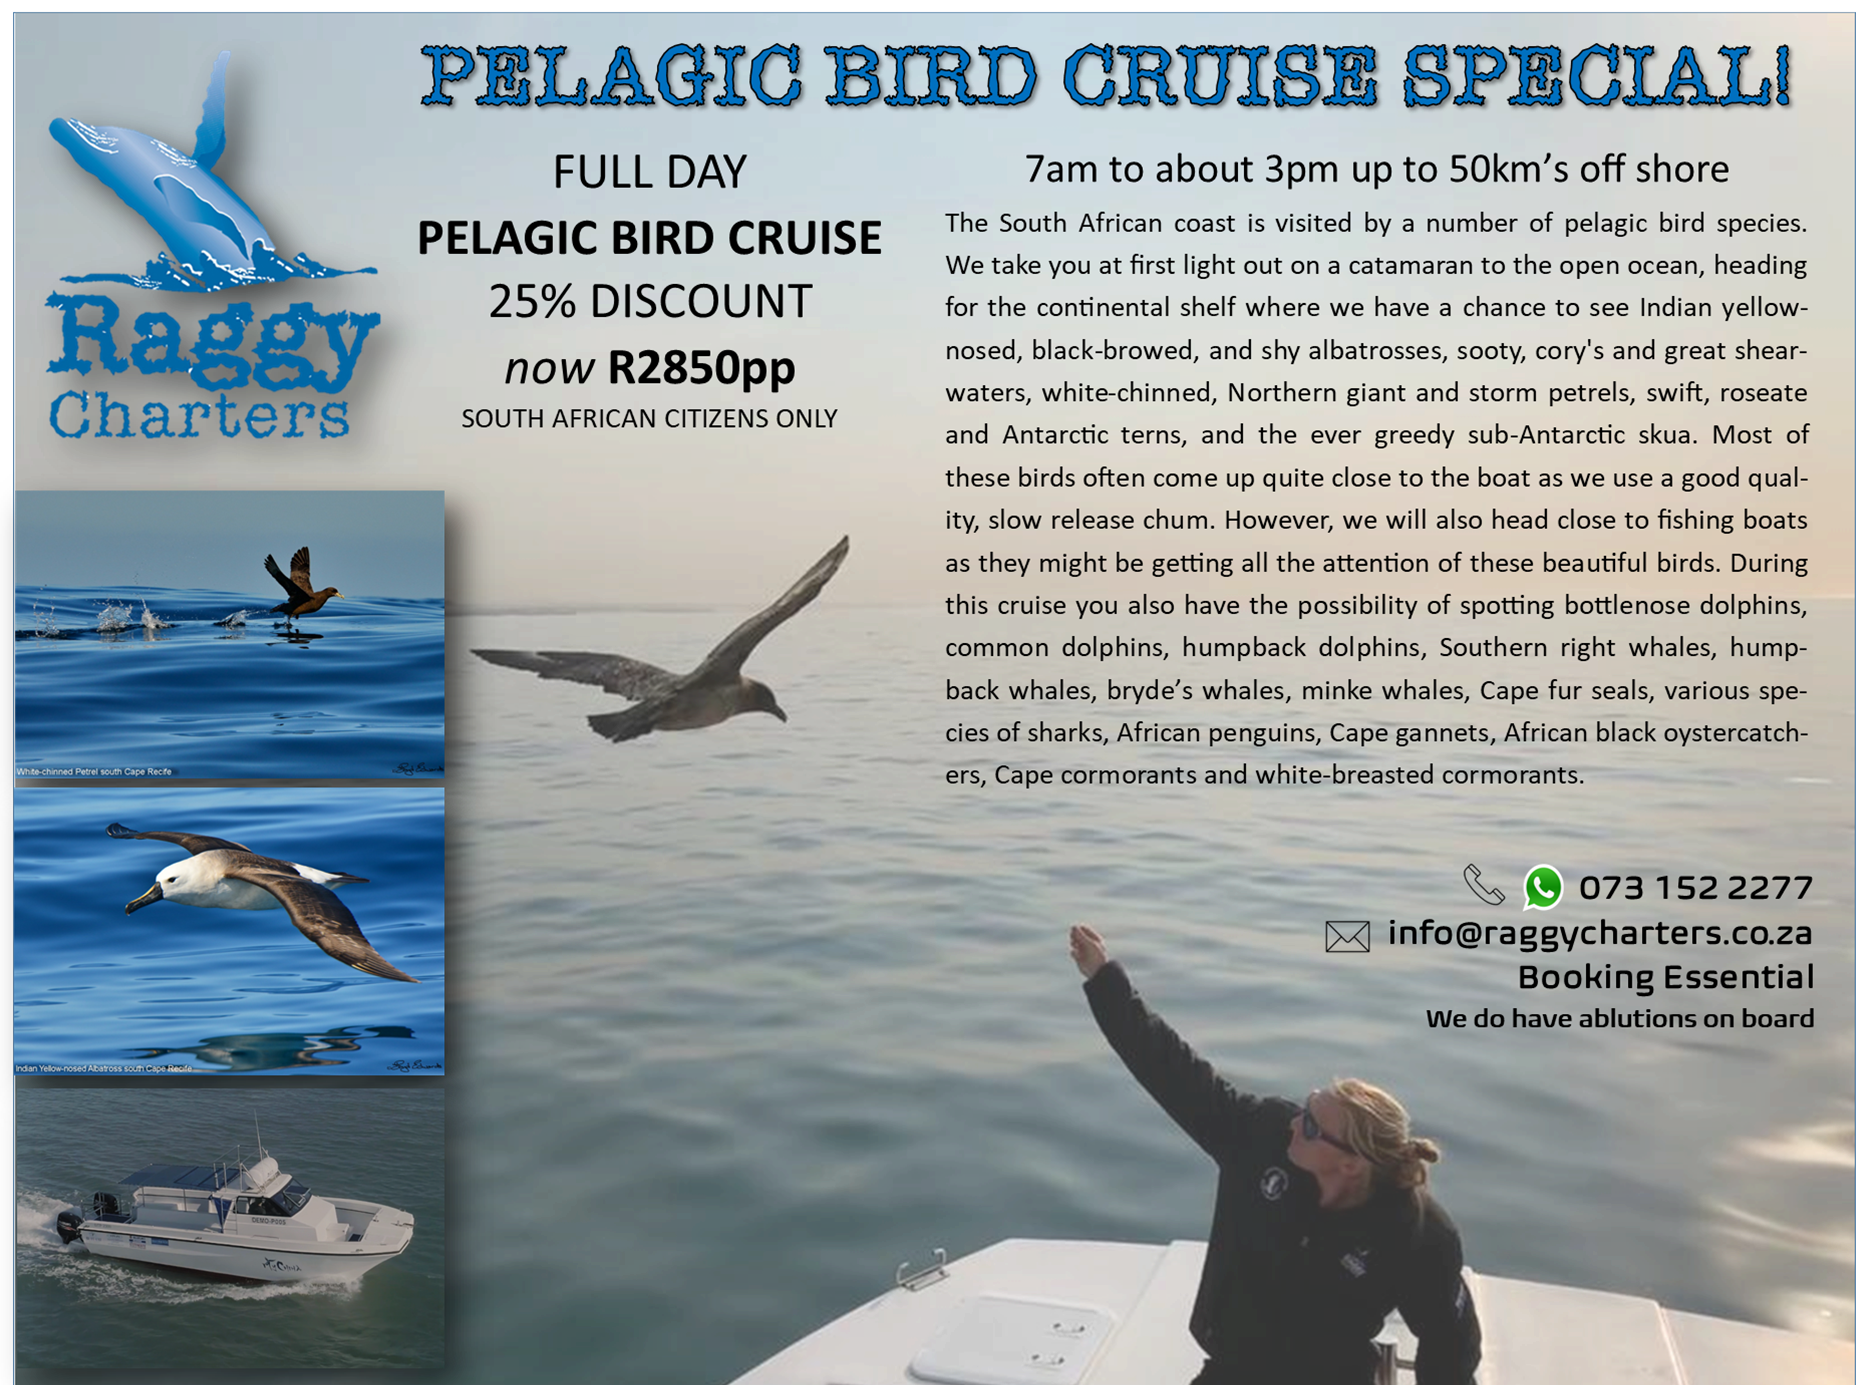 pelagic_bird_cruise_special.png